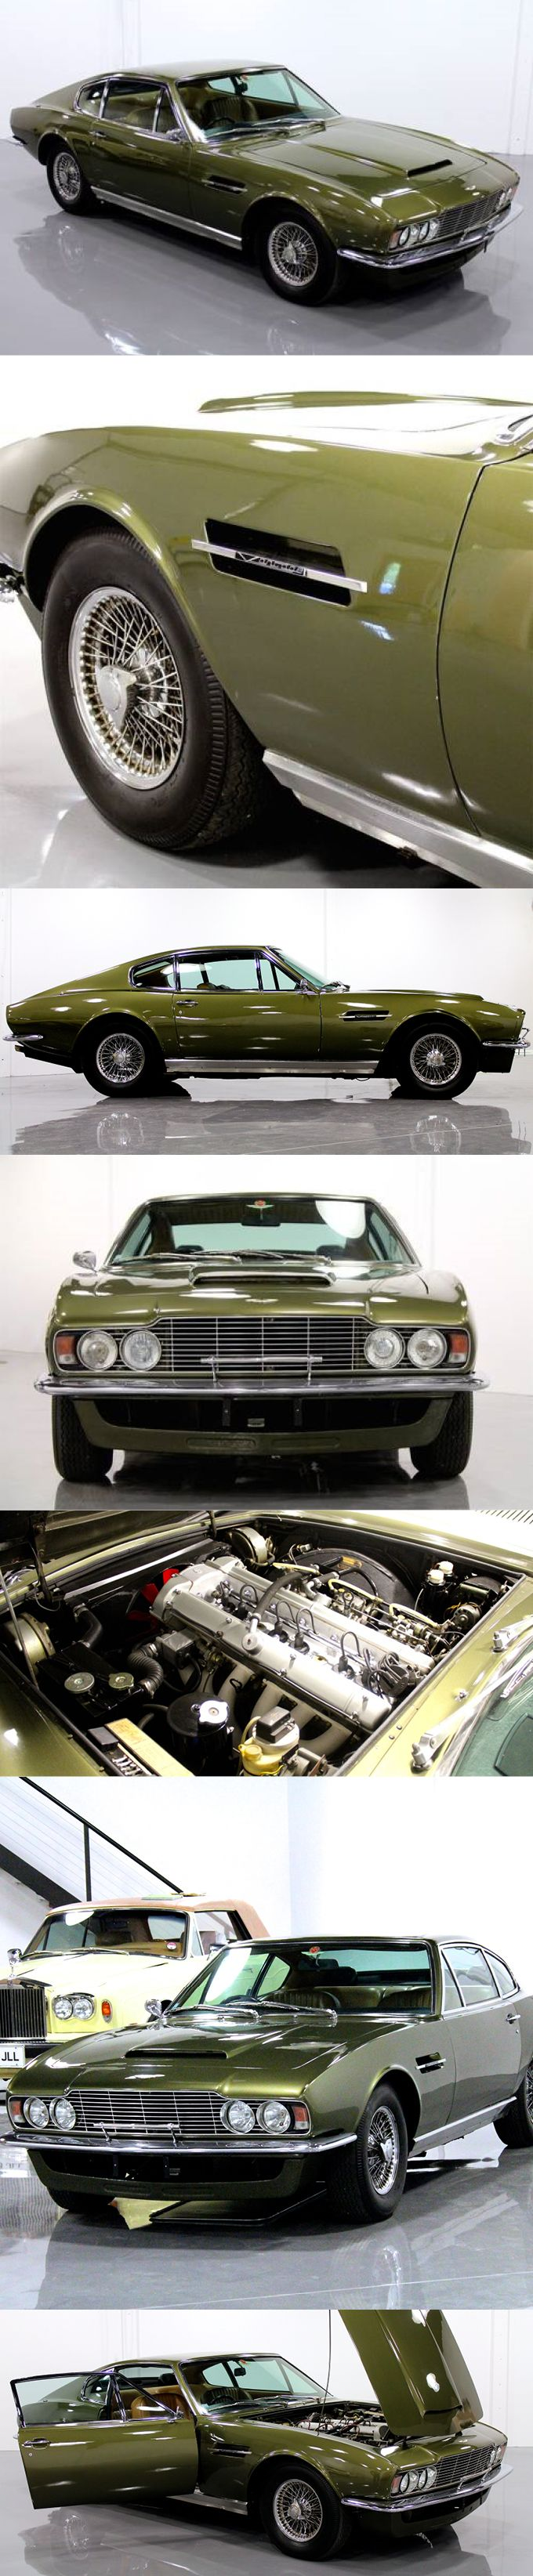 1970 Aston Martin DBS Vantage / 325hp 4.0l L6 / William Towns / UK / green / William Towns / 17-278